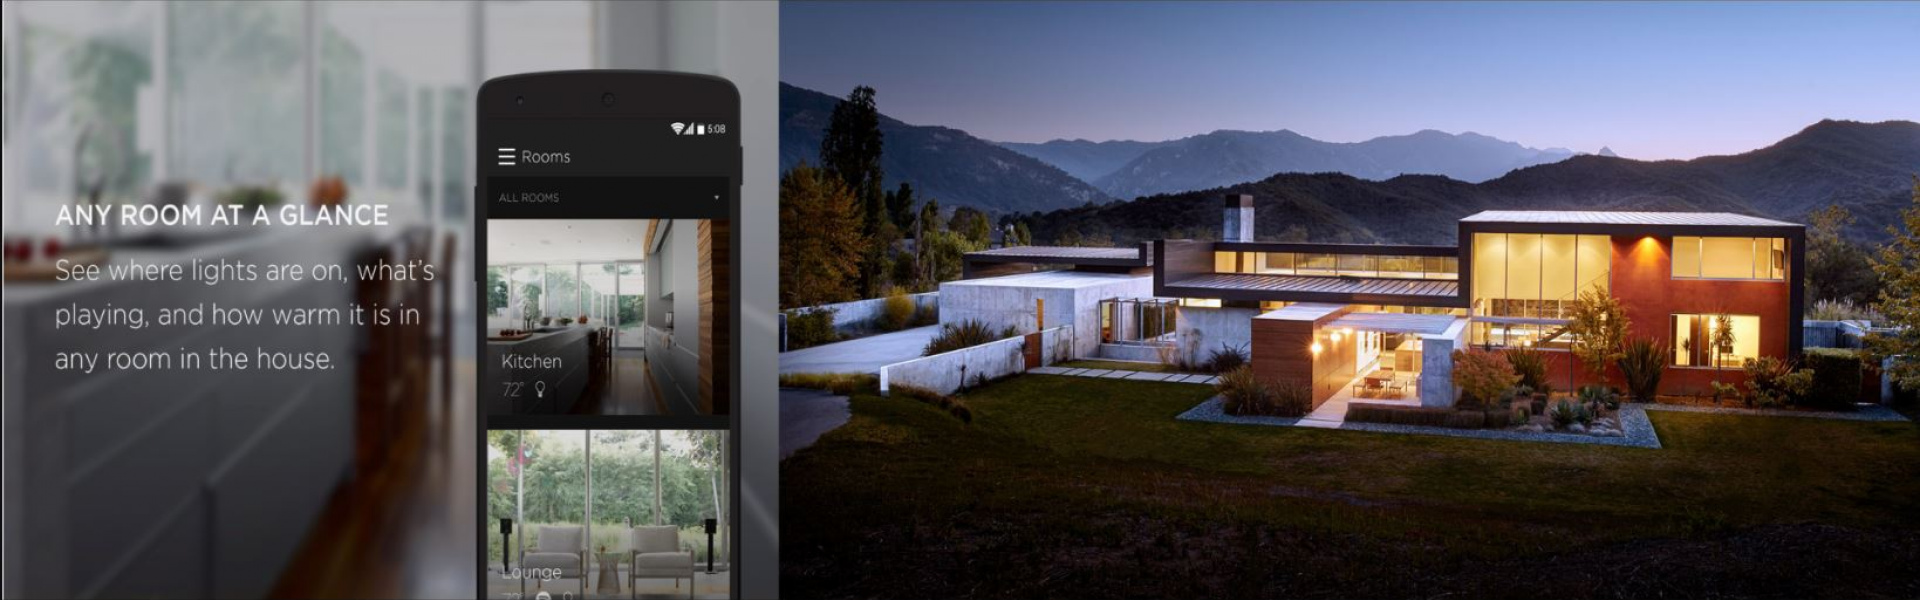 Smart home installation by Tree Ridge Enterprise for Killington